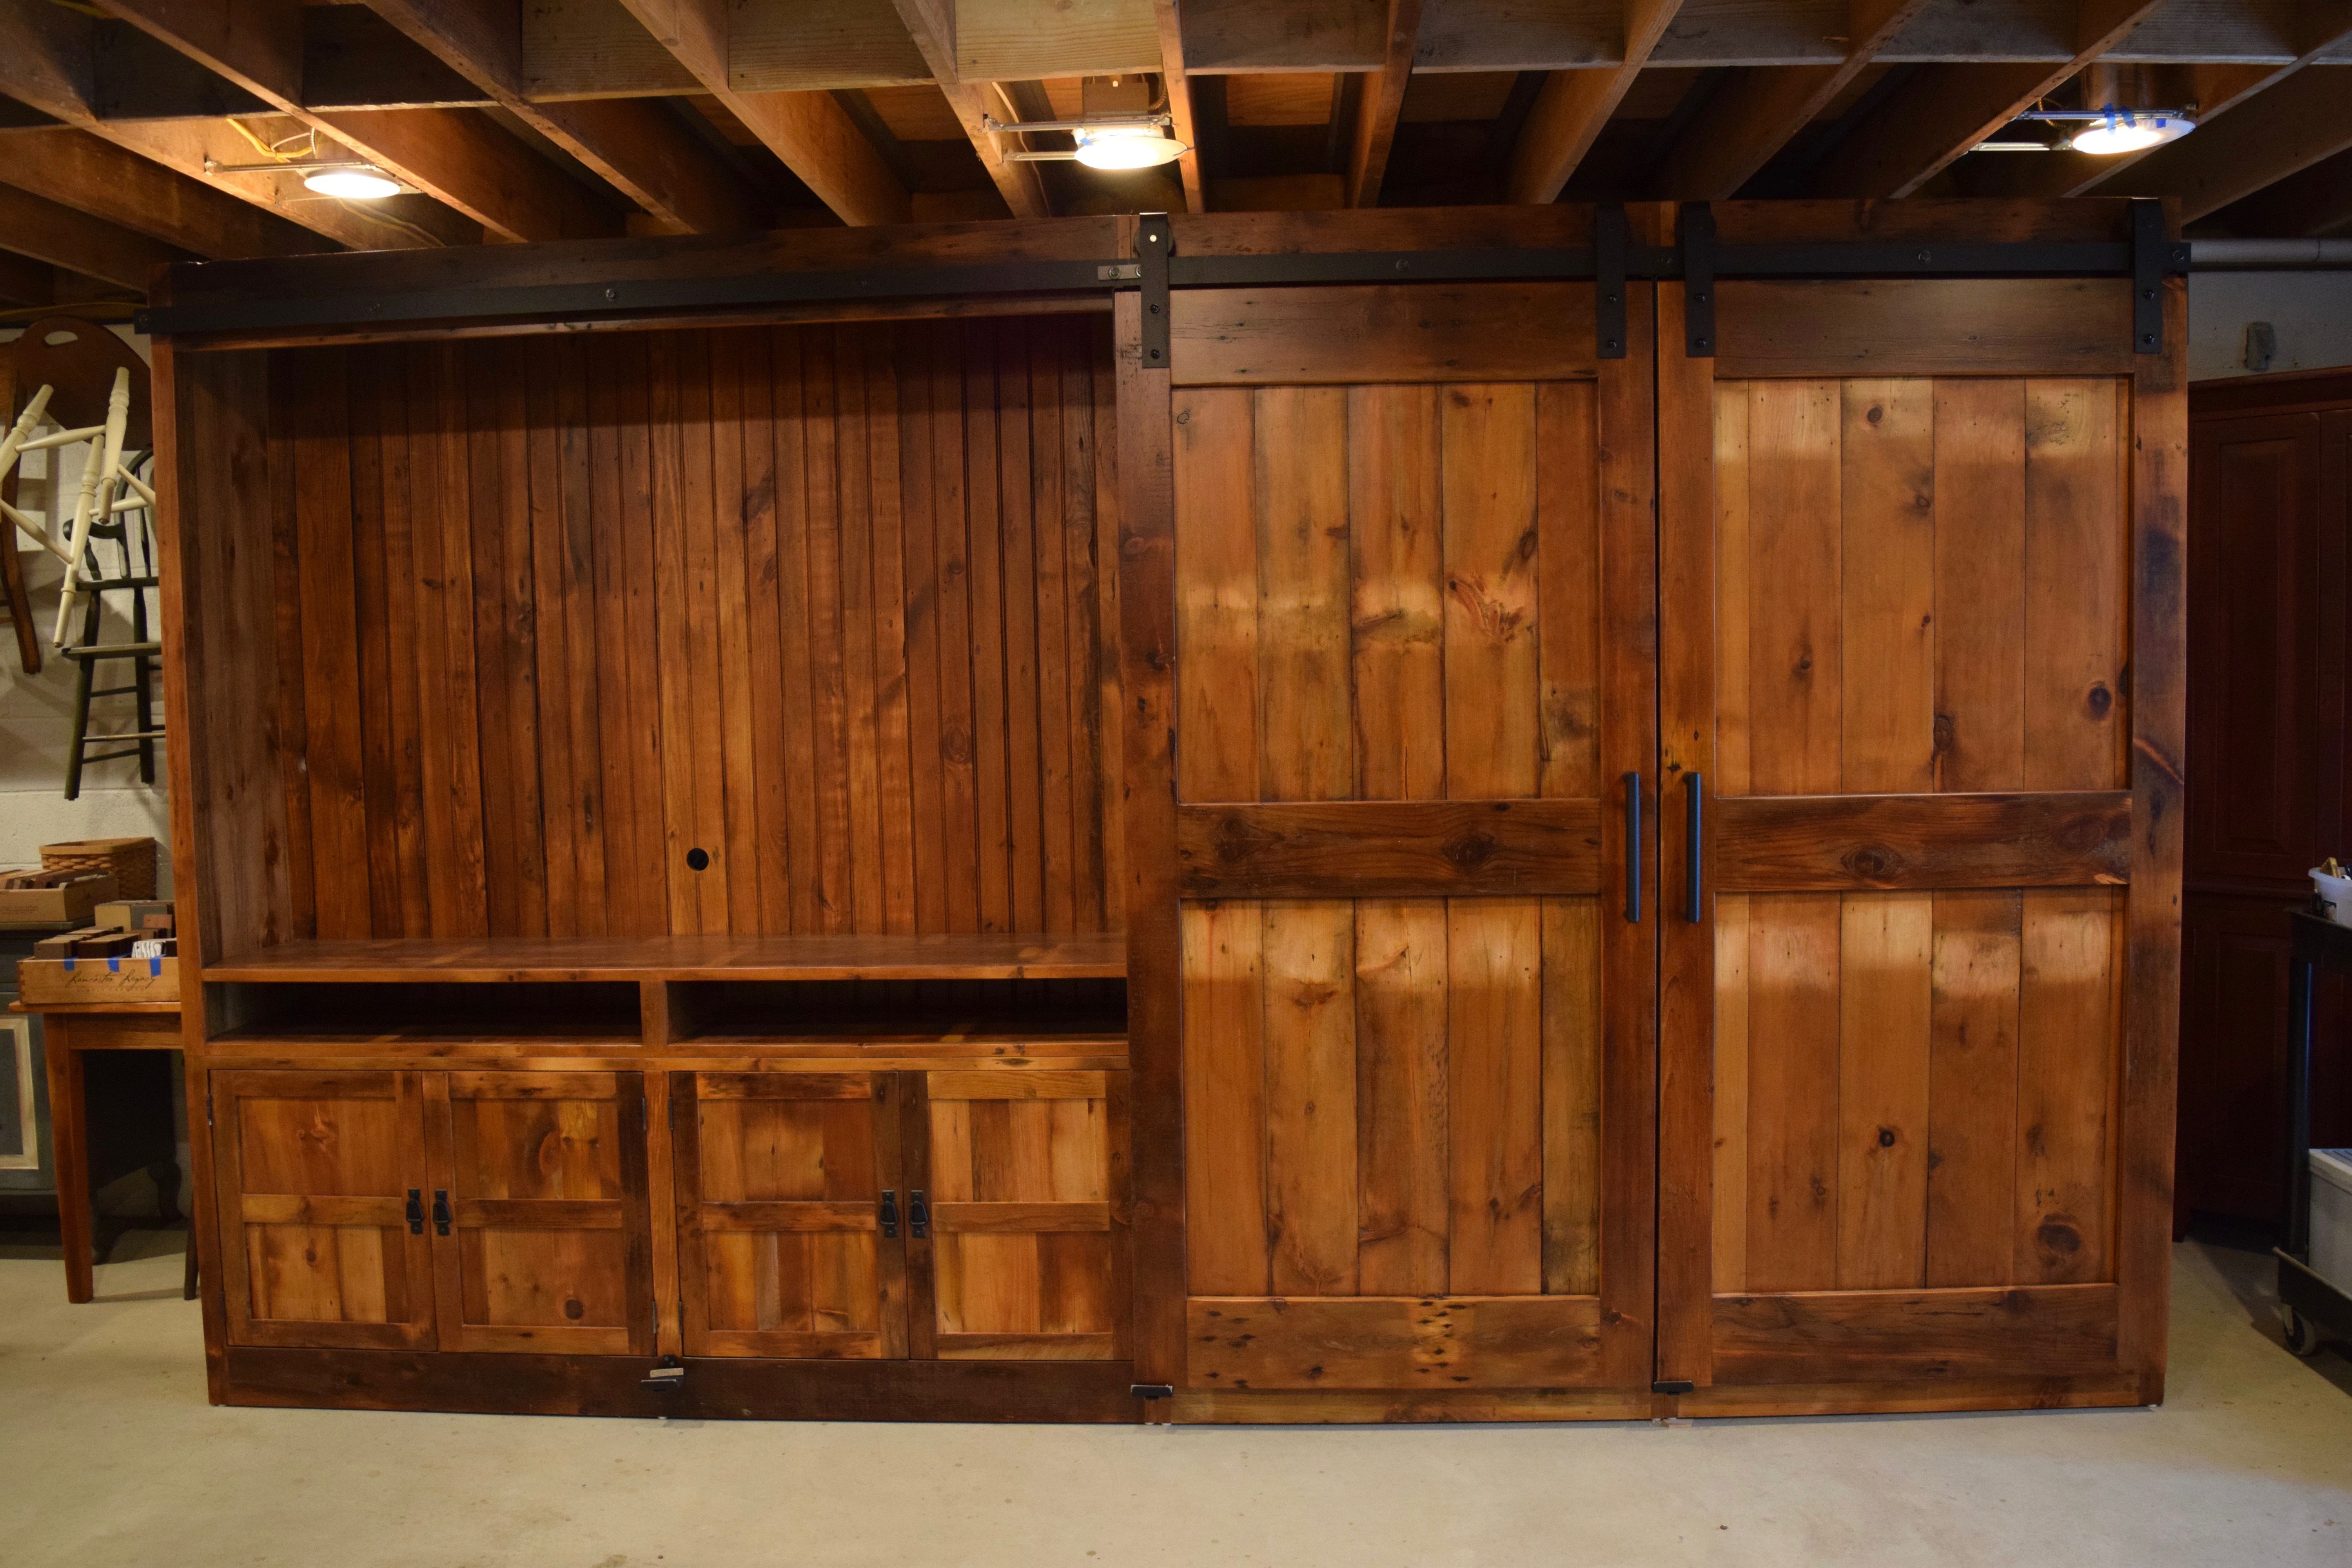 by cabinet door furniture com barn the barnwood pin furniturefromthebarn entertainment from doors